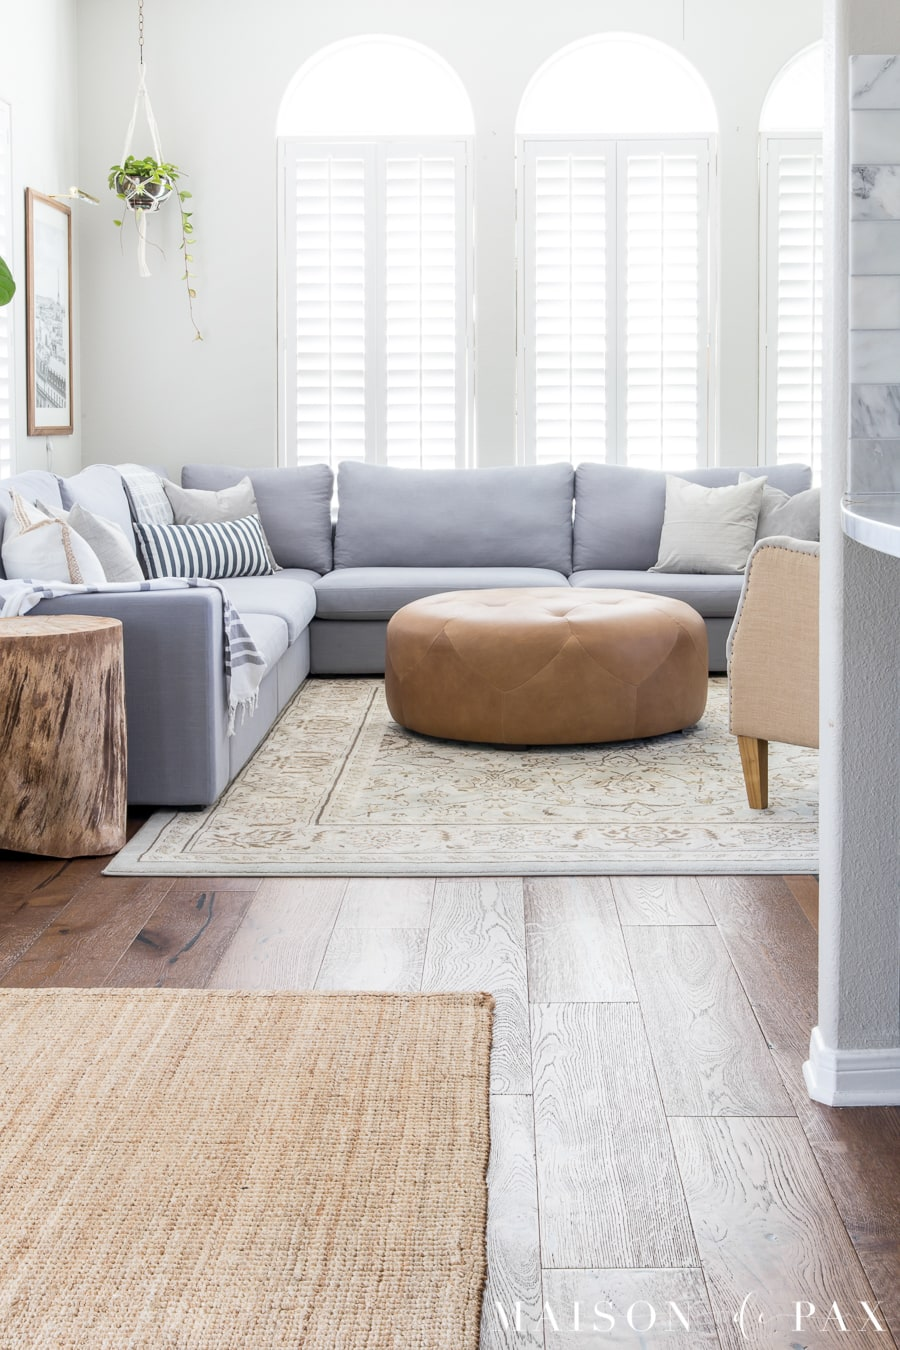 5 tips for decorating a living room with a sectional: learn how to create a gorgeous, layered, neutral look. #sectionalsofa #modularsofa #livingroomdecor #livingroomdesign #rusticmodern #lightgraysectional #graysectional #neutrallivingroom